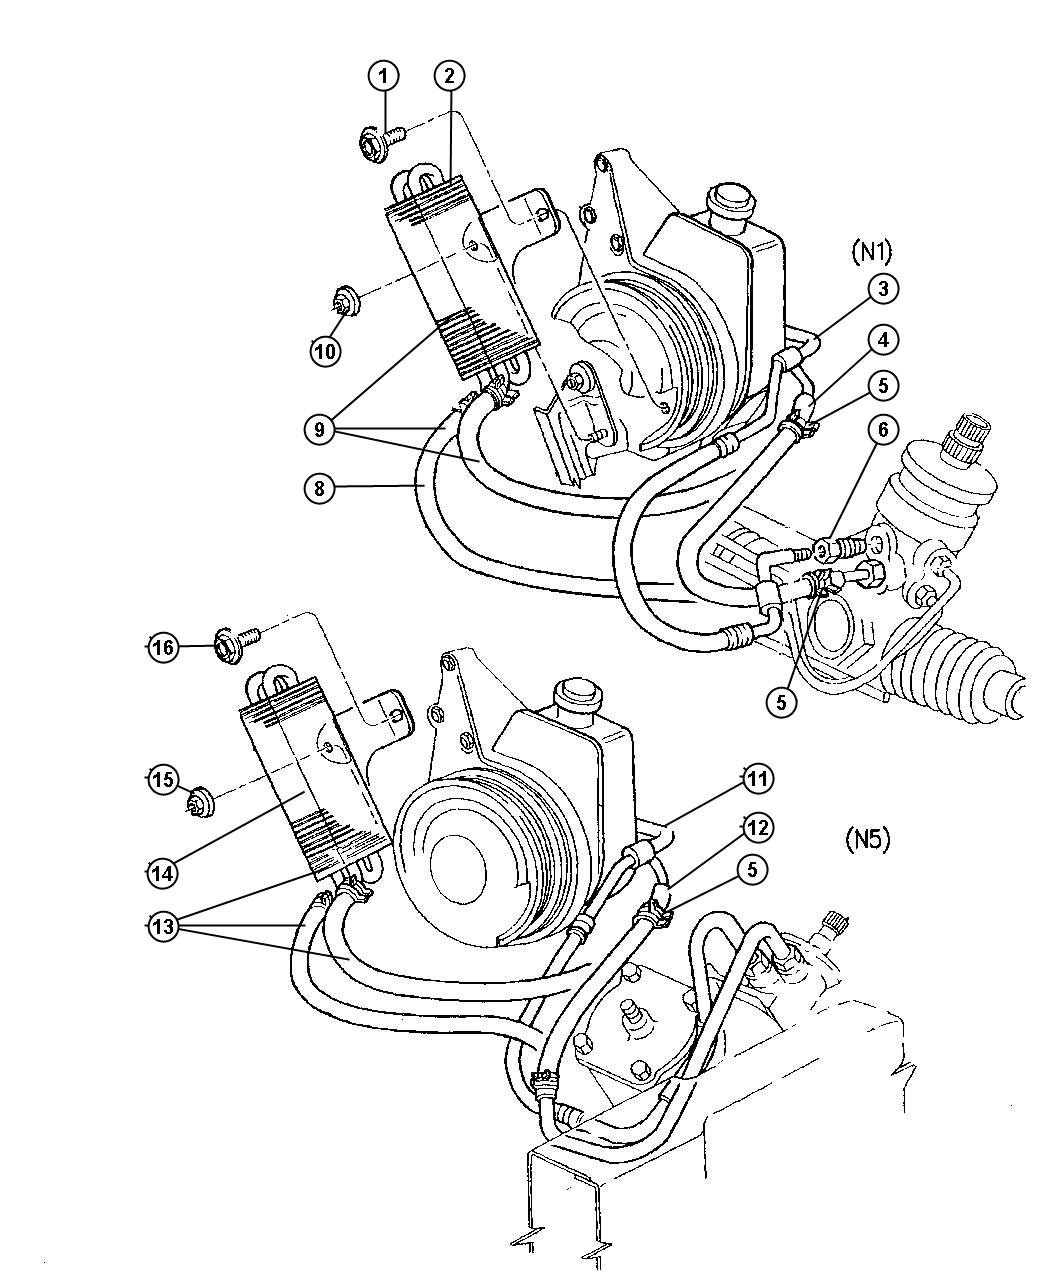 2000 Dodge Dakota Power Steering Diagram, 2000, Free